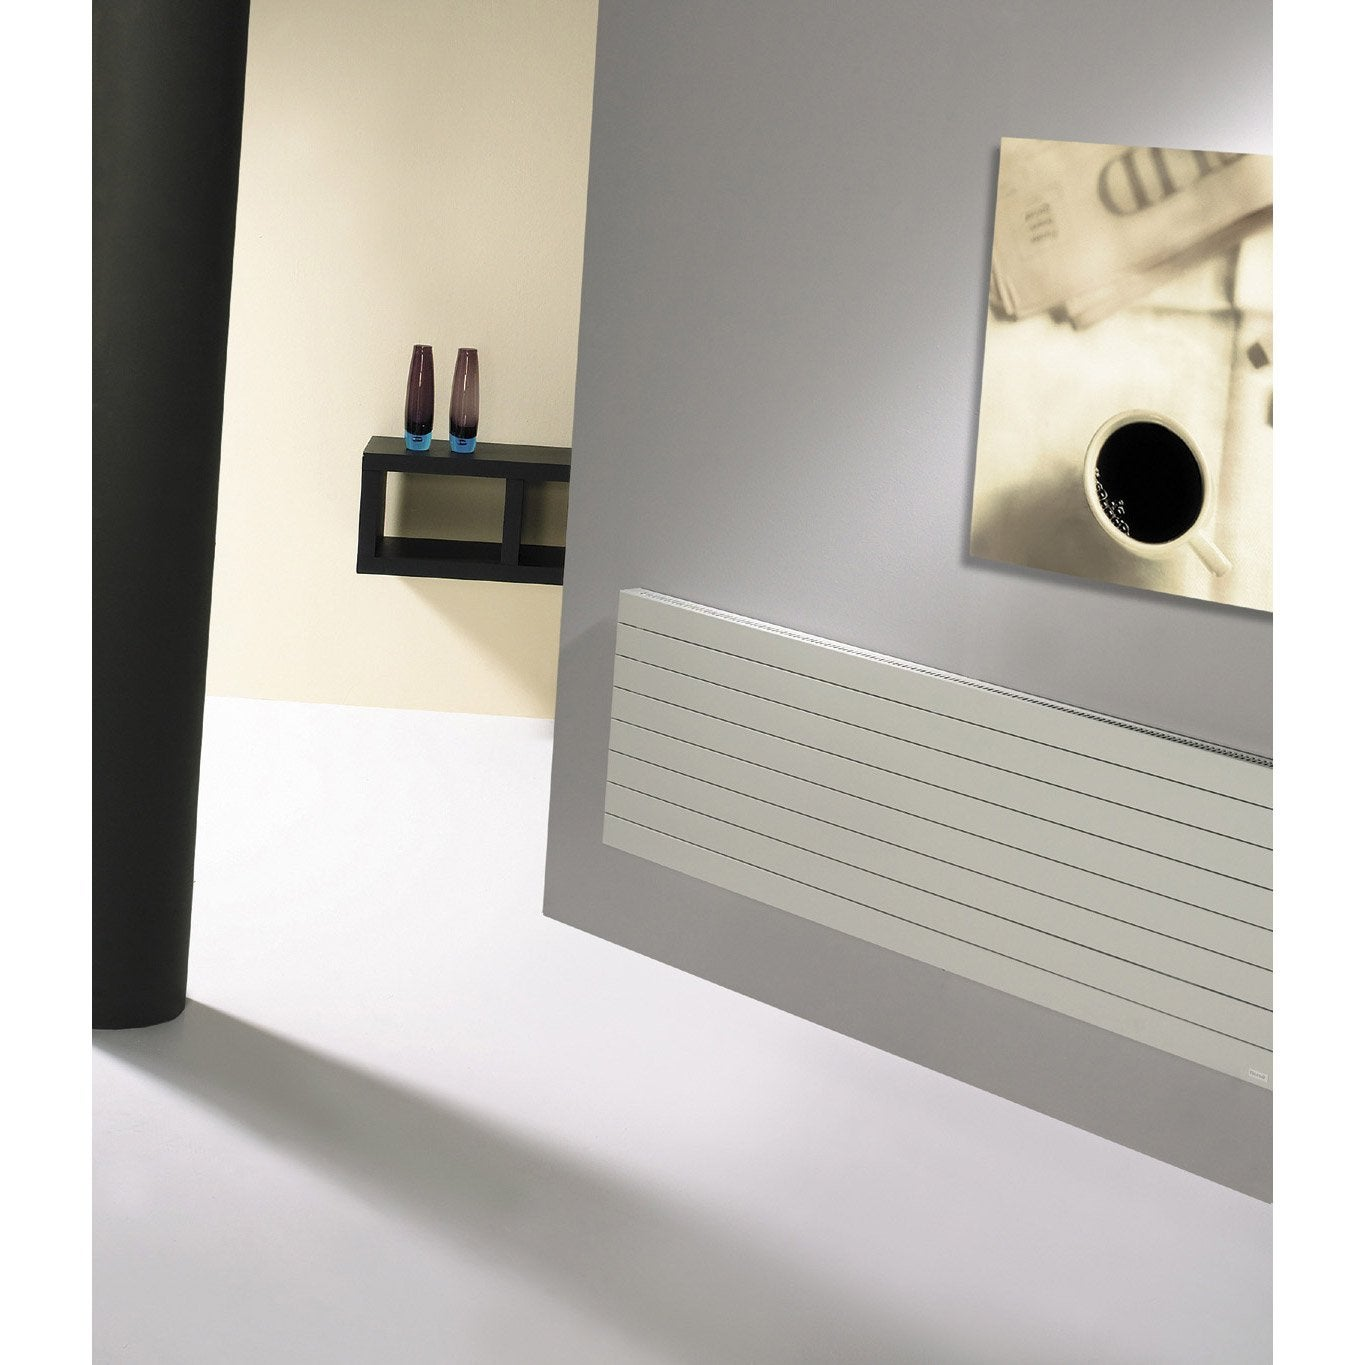 radiateur chauffage central acier loden planitude 1285w leroy merlin. Black Bedroom Furniture Sets. Home Design Ideas